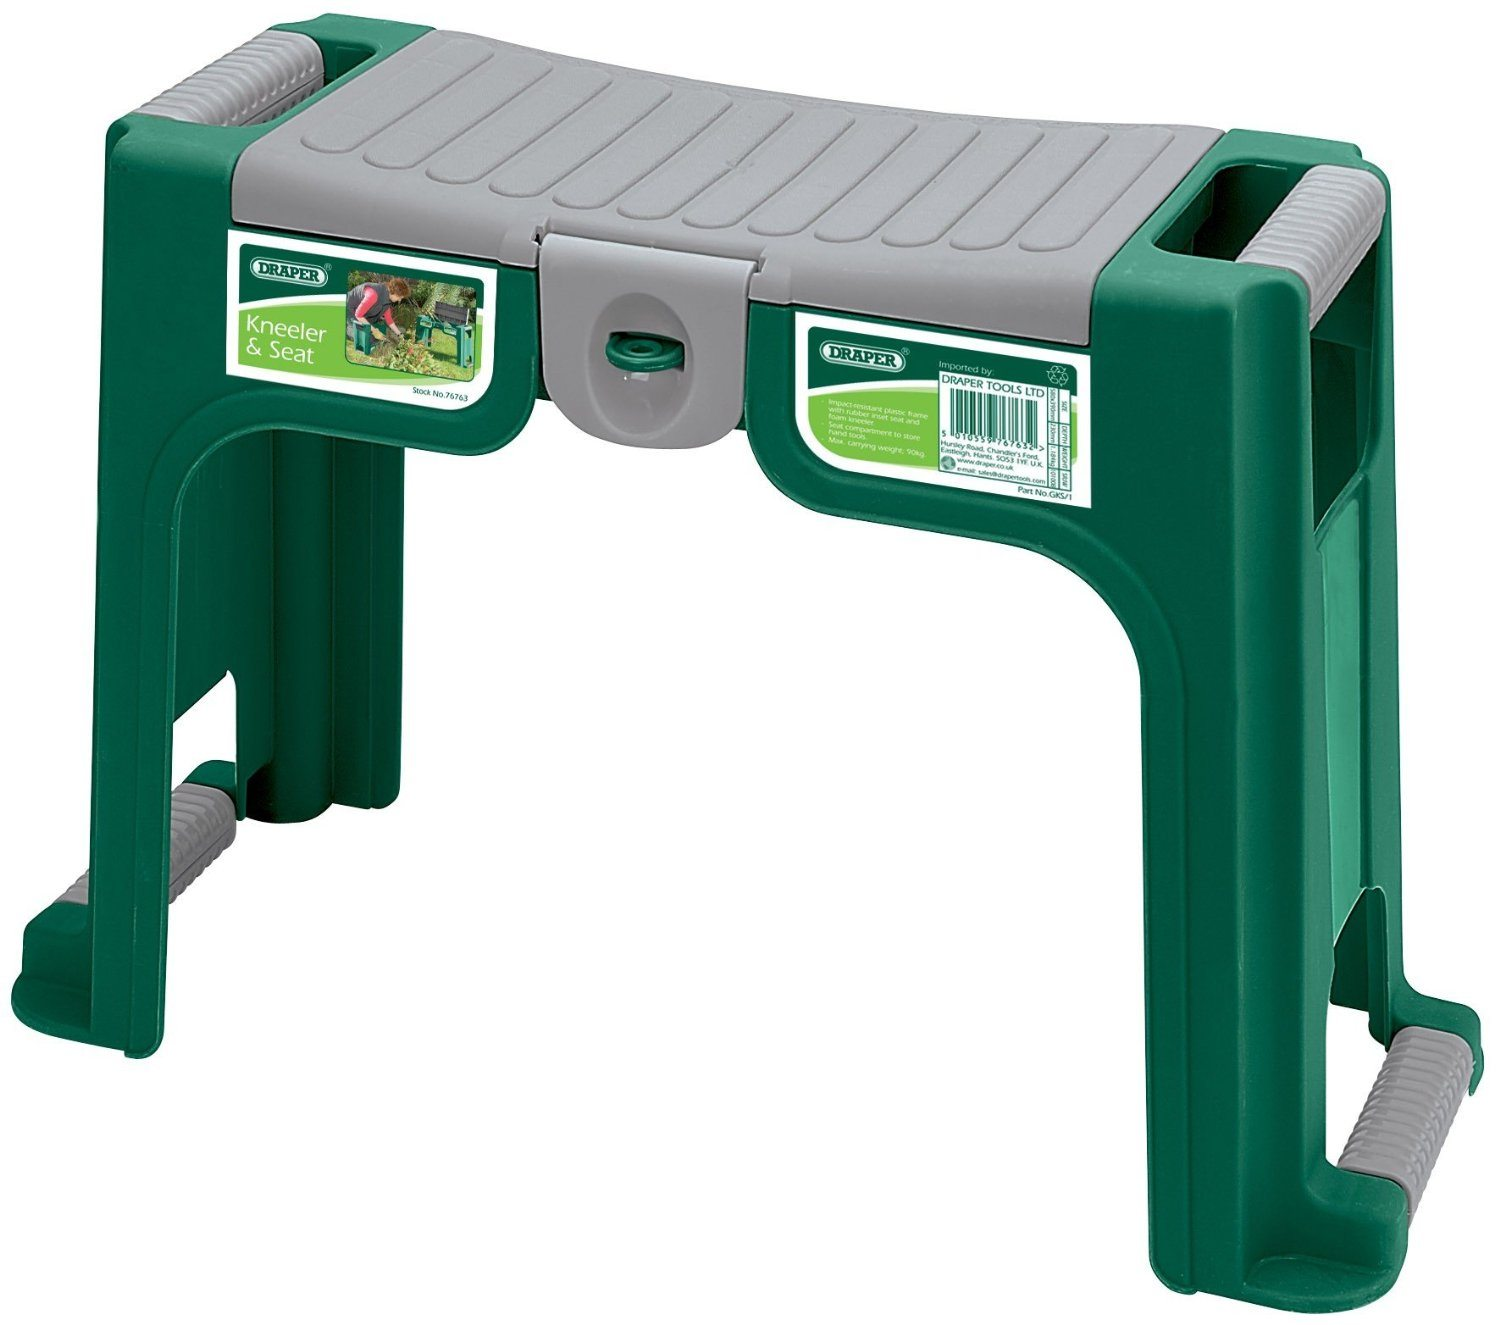 buying a kneeler seat